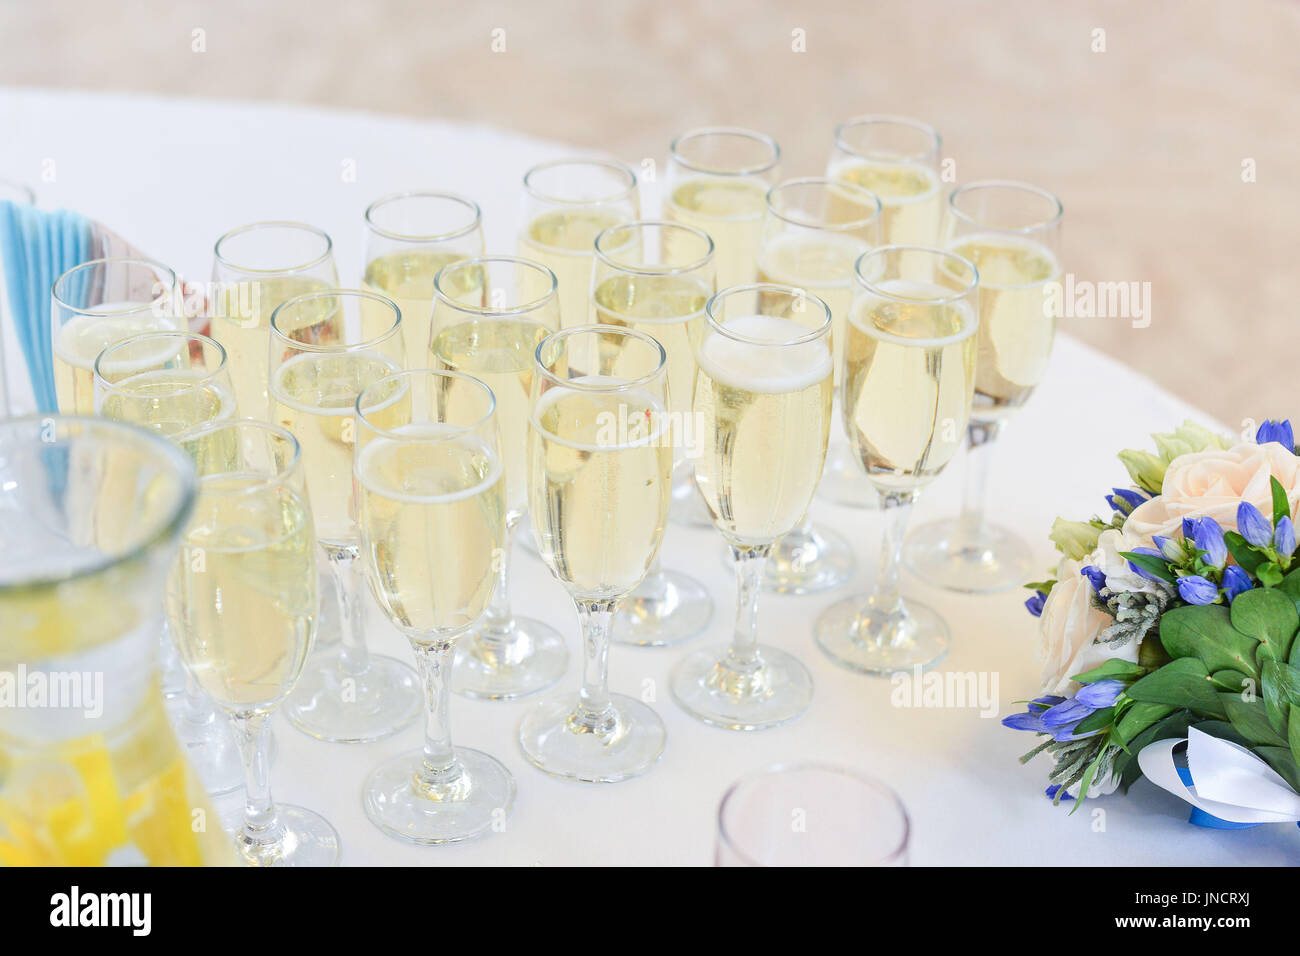 Wedding table setting in restaurant - Stock Image